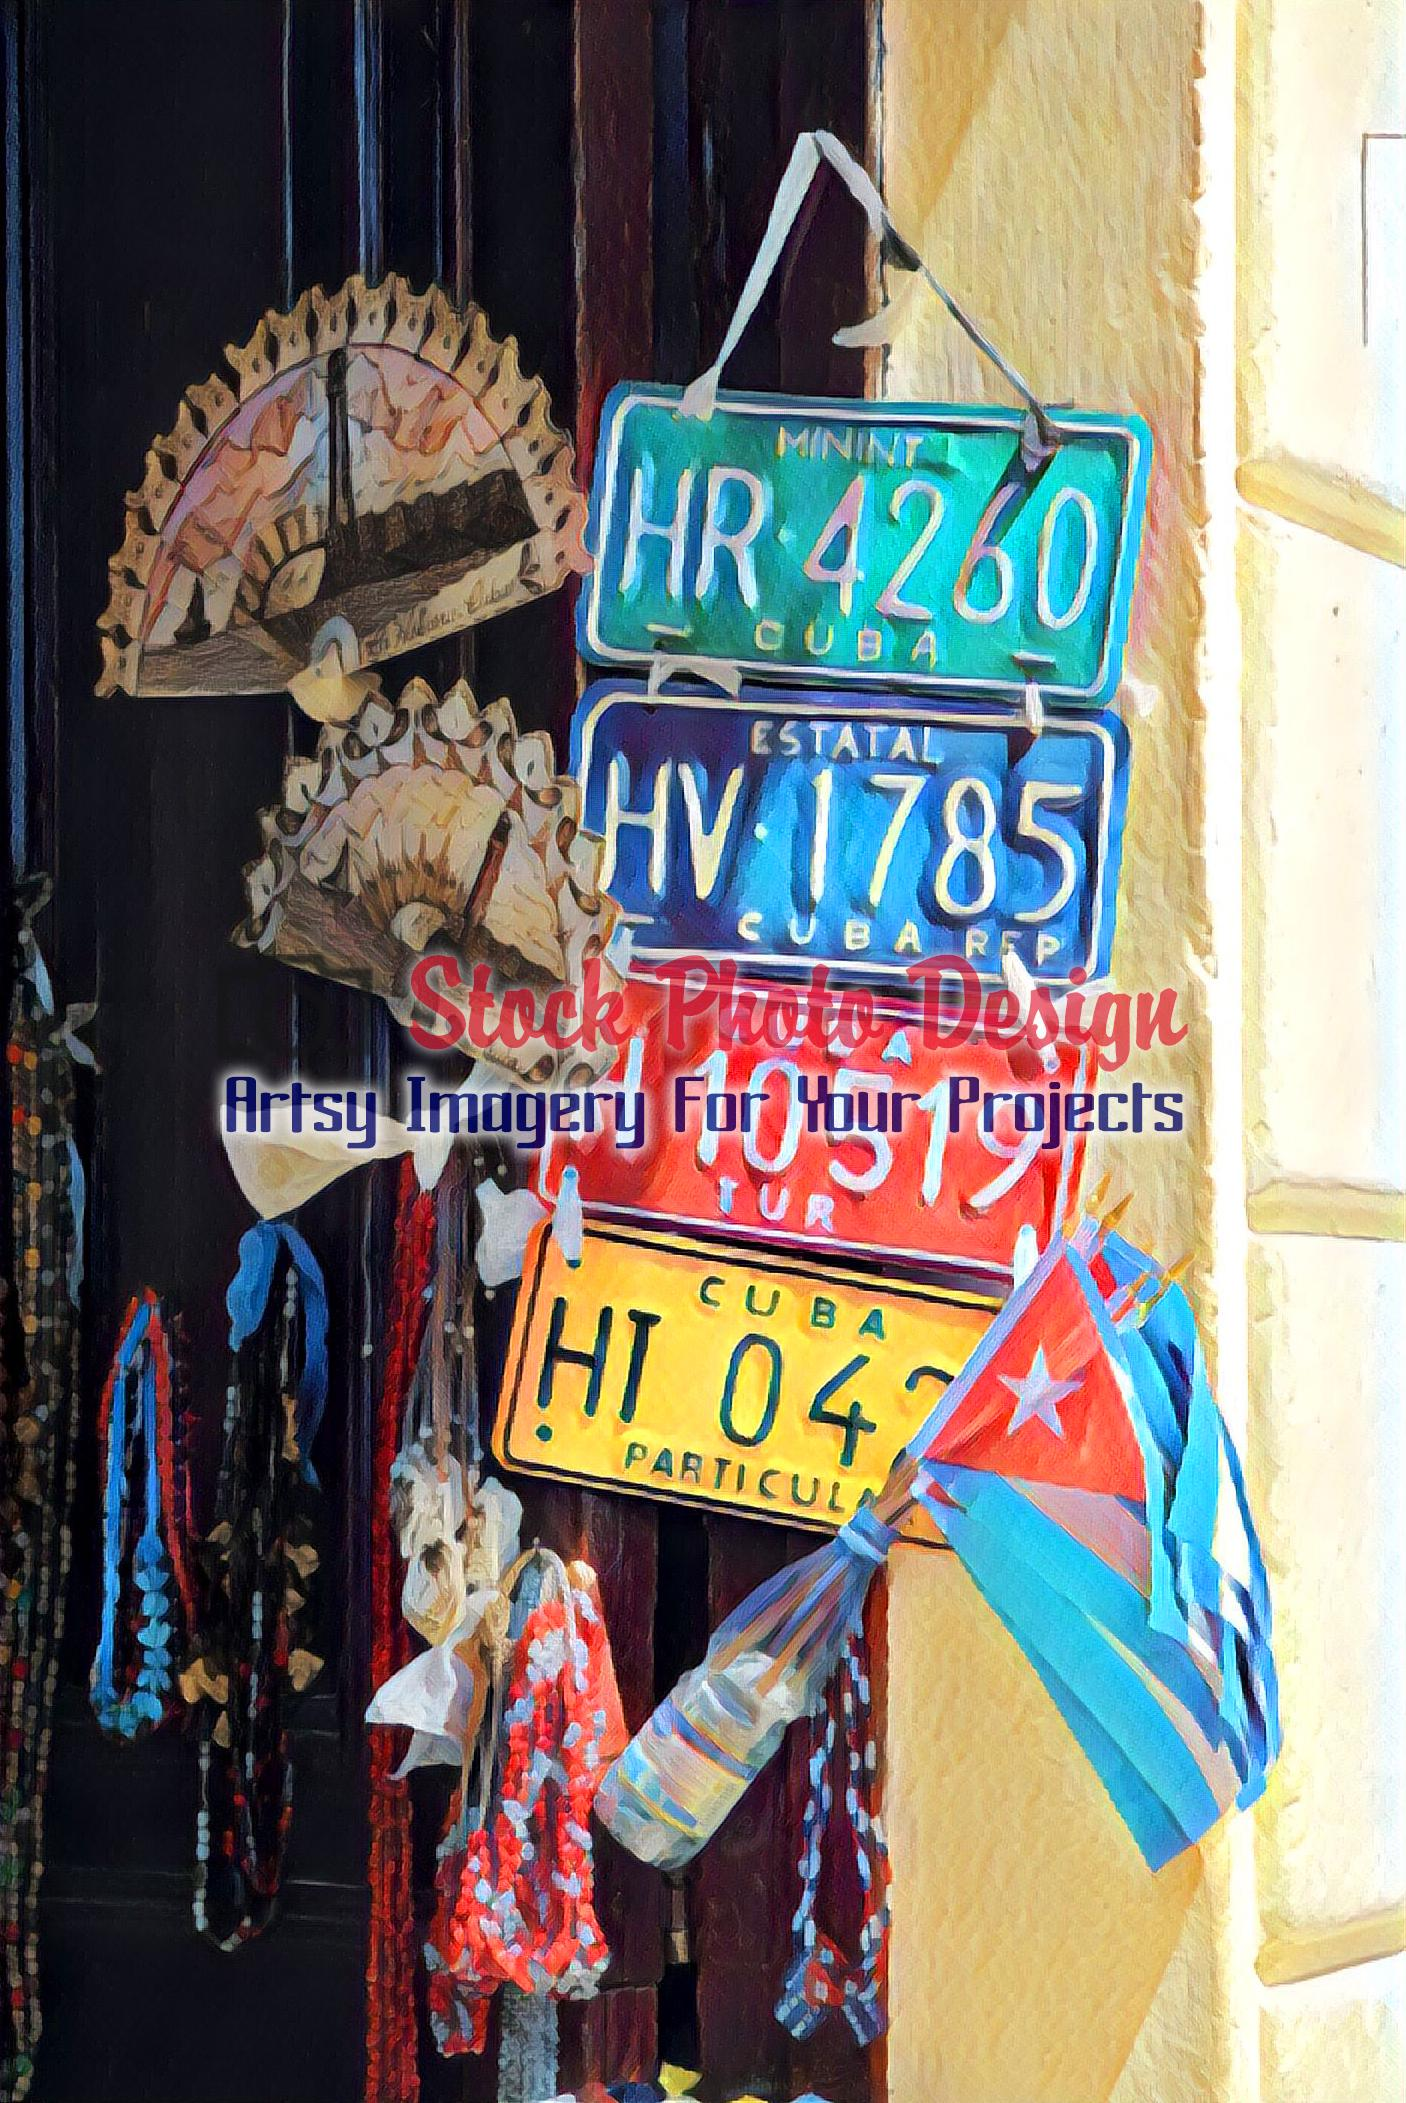 Cuban Car Plates 2 - Dimensions: 1406 by 2103 pixels